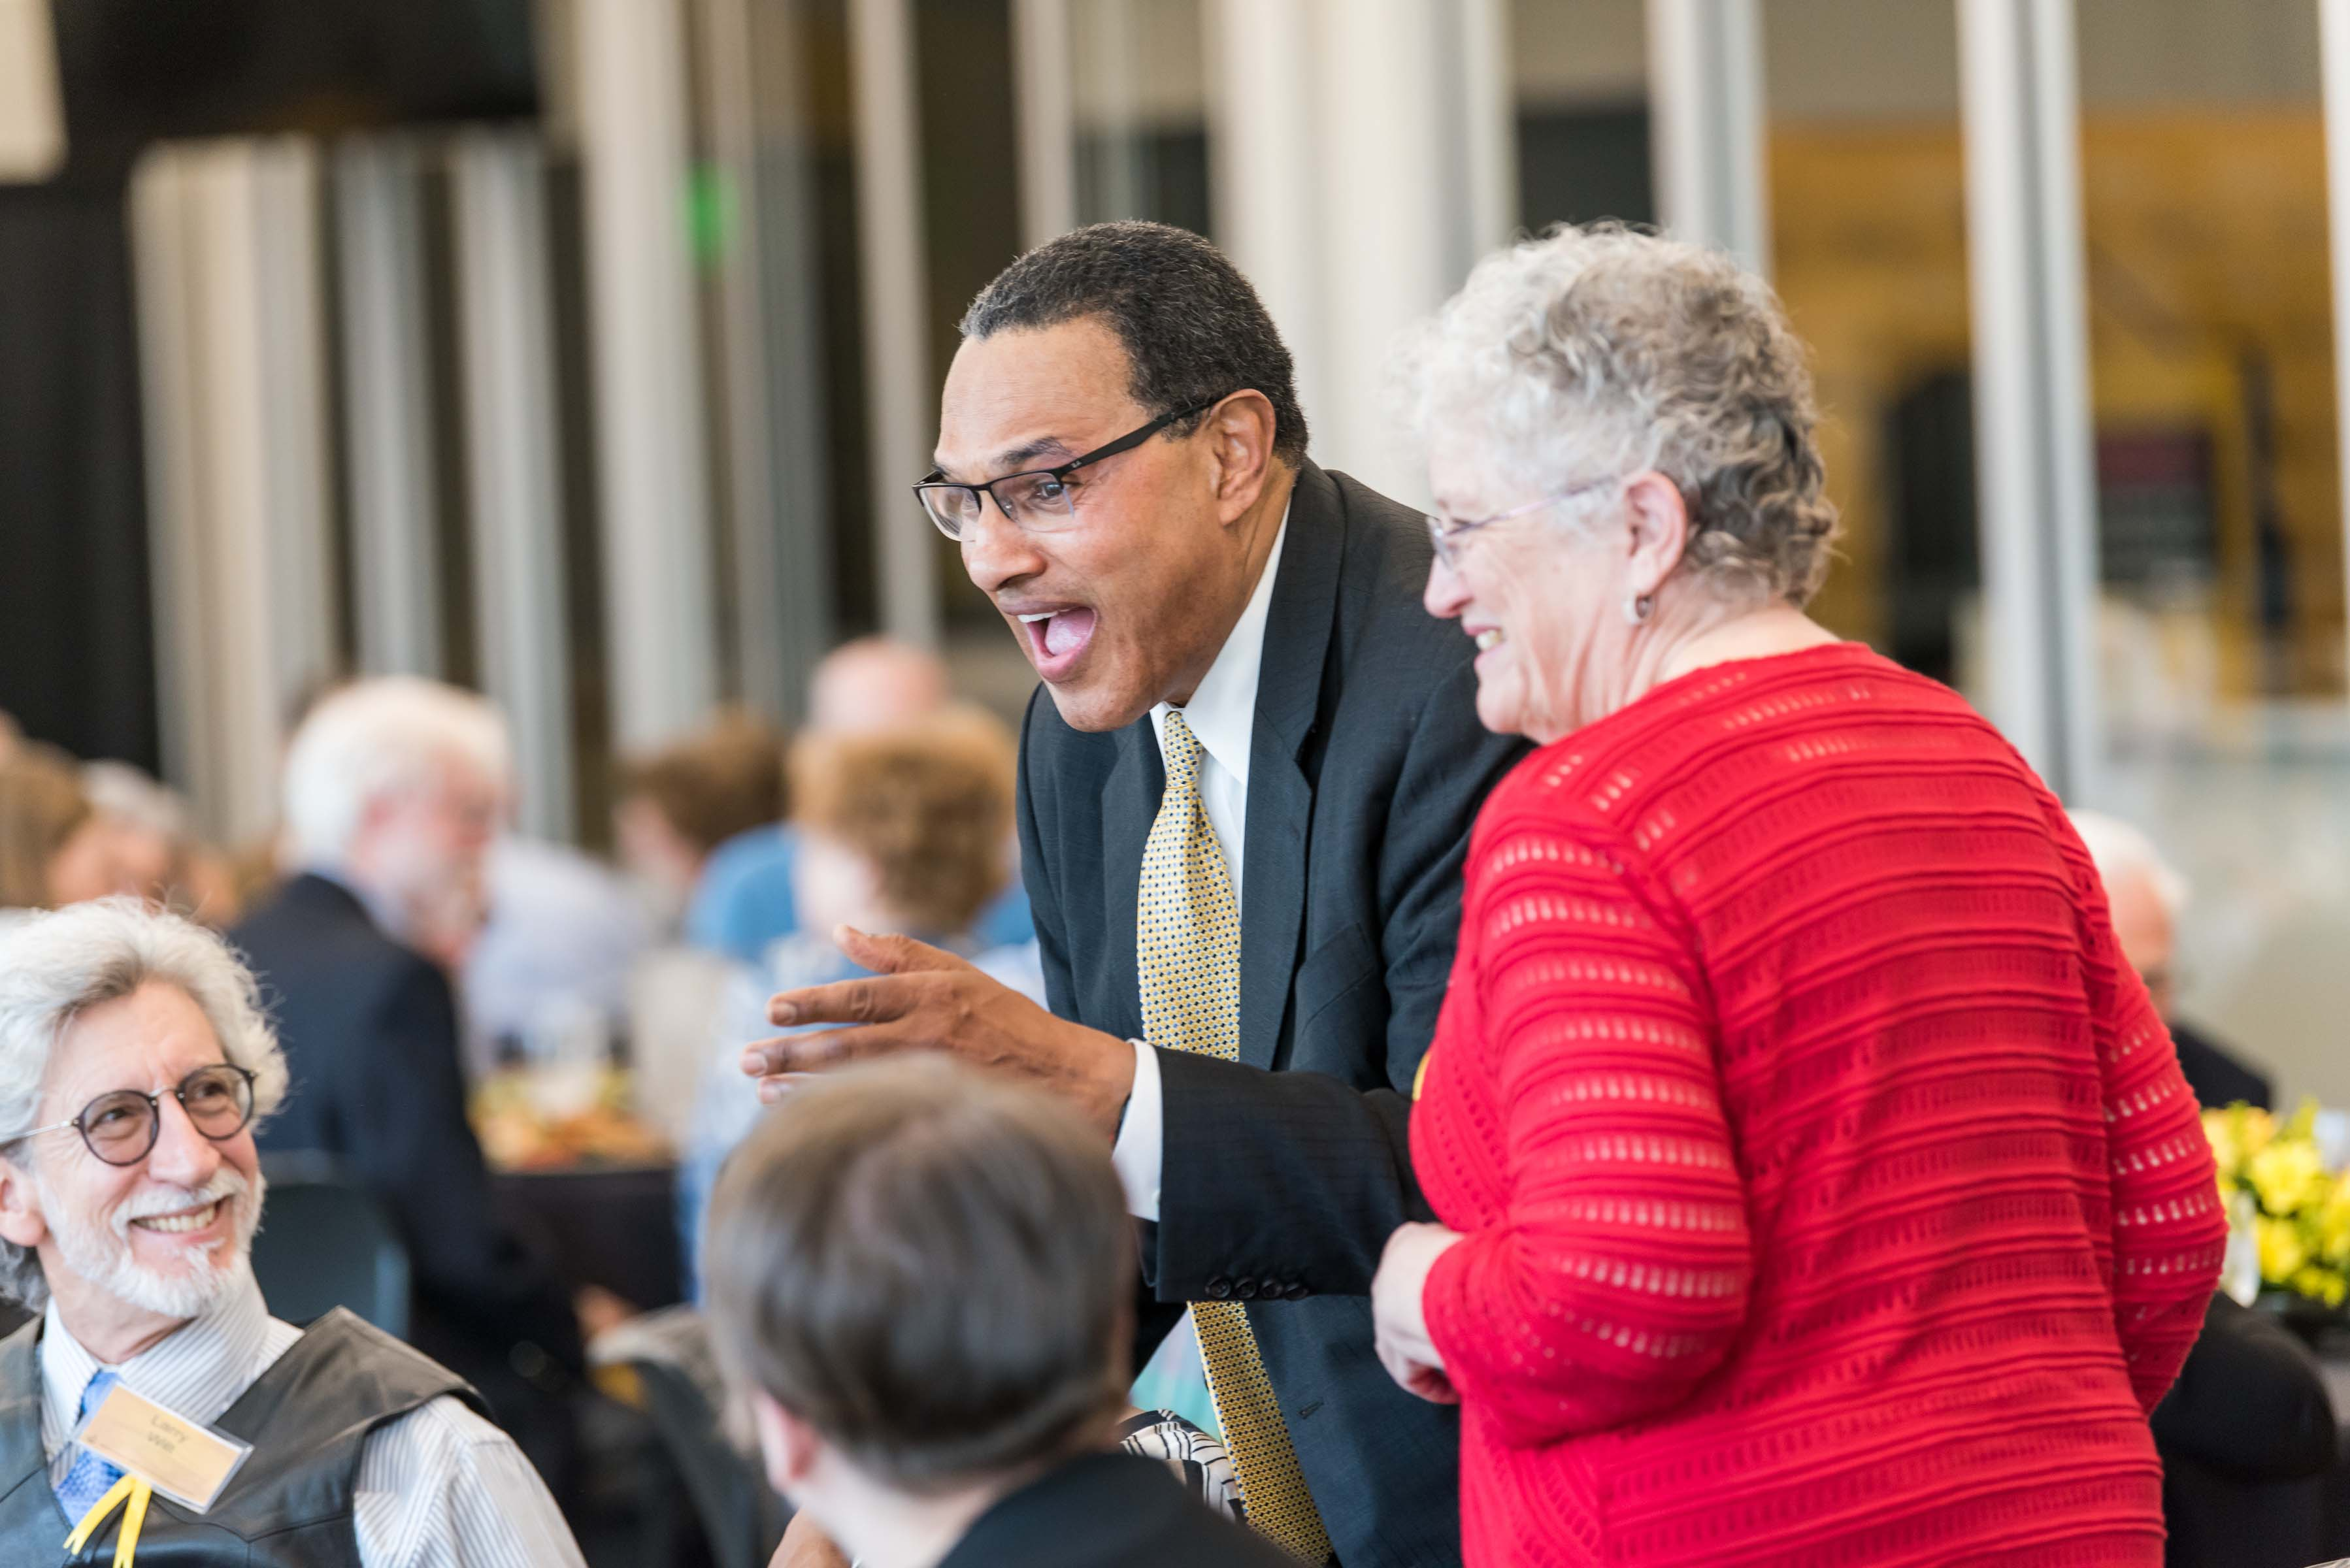 Hrabowski stands and laughs with table at Wisdom Institute lunch